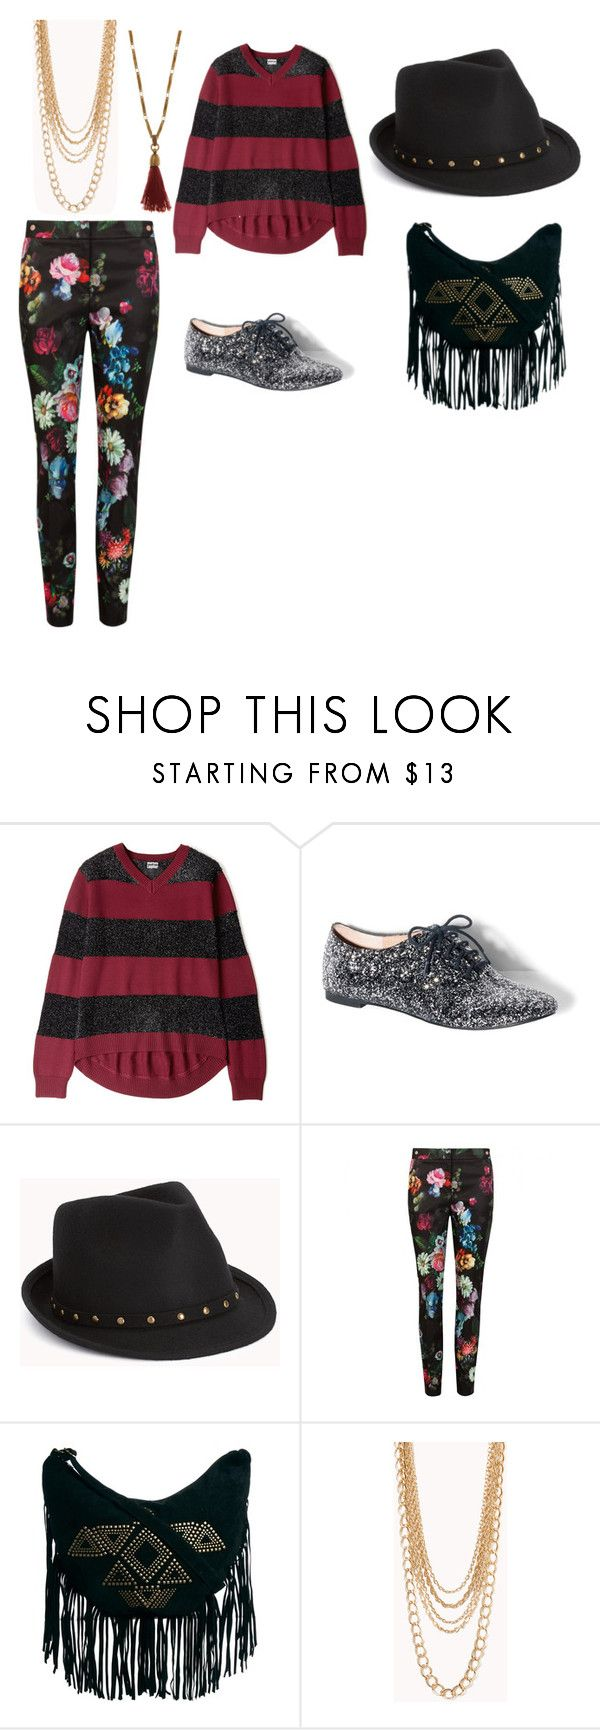 """""""indie rock outfit"""" by rainbow32539 ❤ liked on Polyvore featuring Markus Lupfer, Vince Camuto, Forever 21, Ted Baker, MINKPINK and Isabel Marant"""